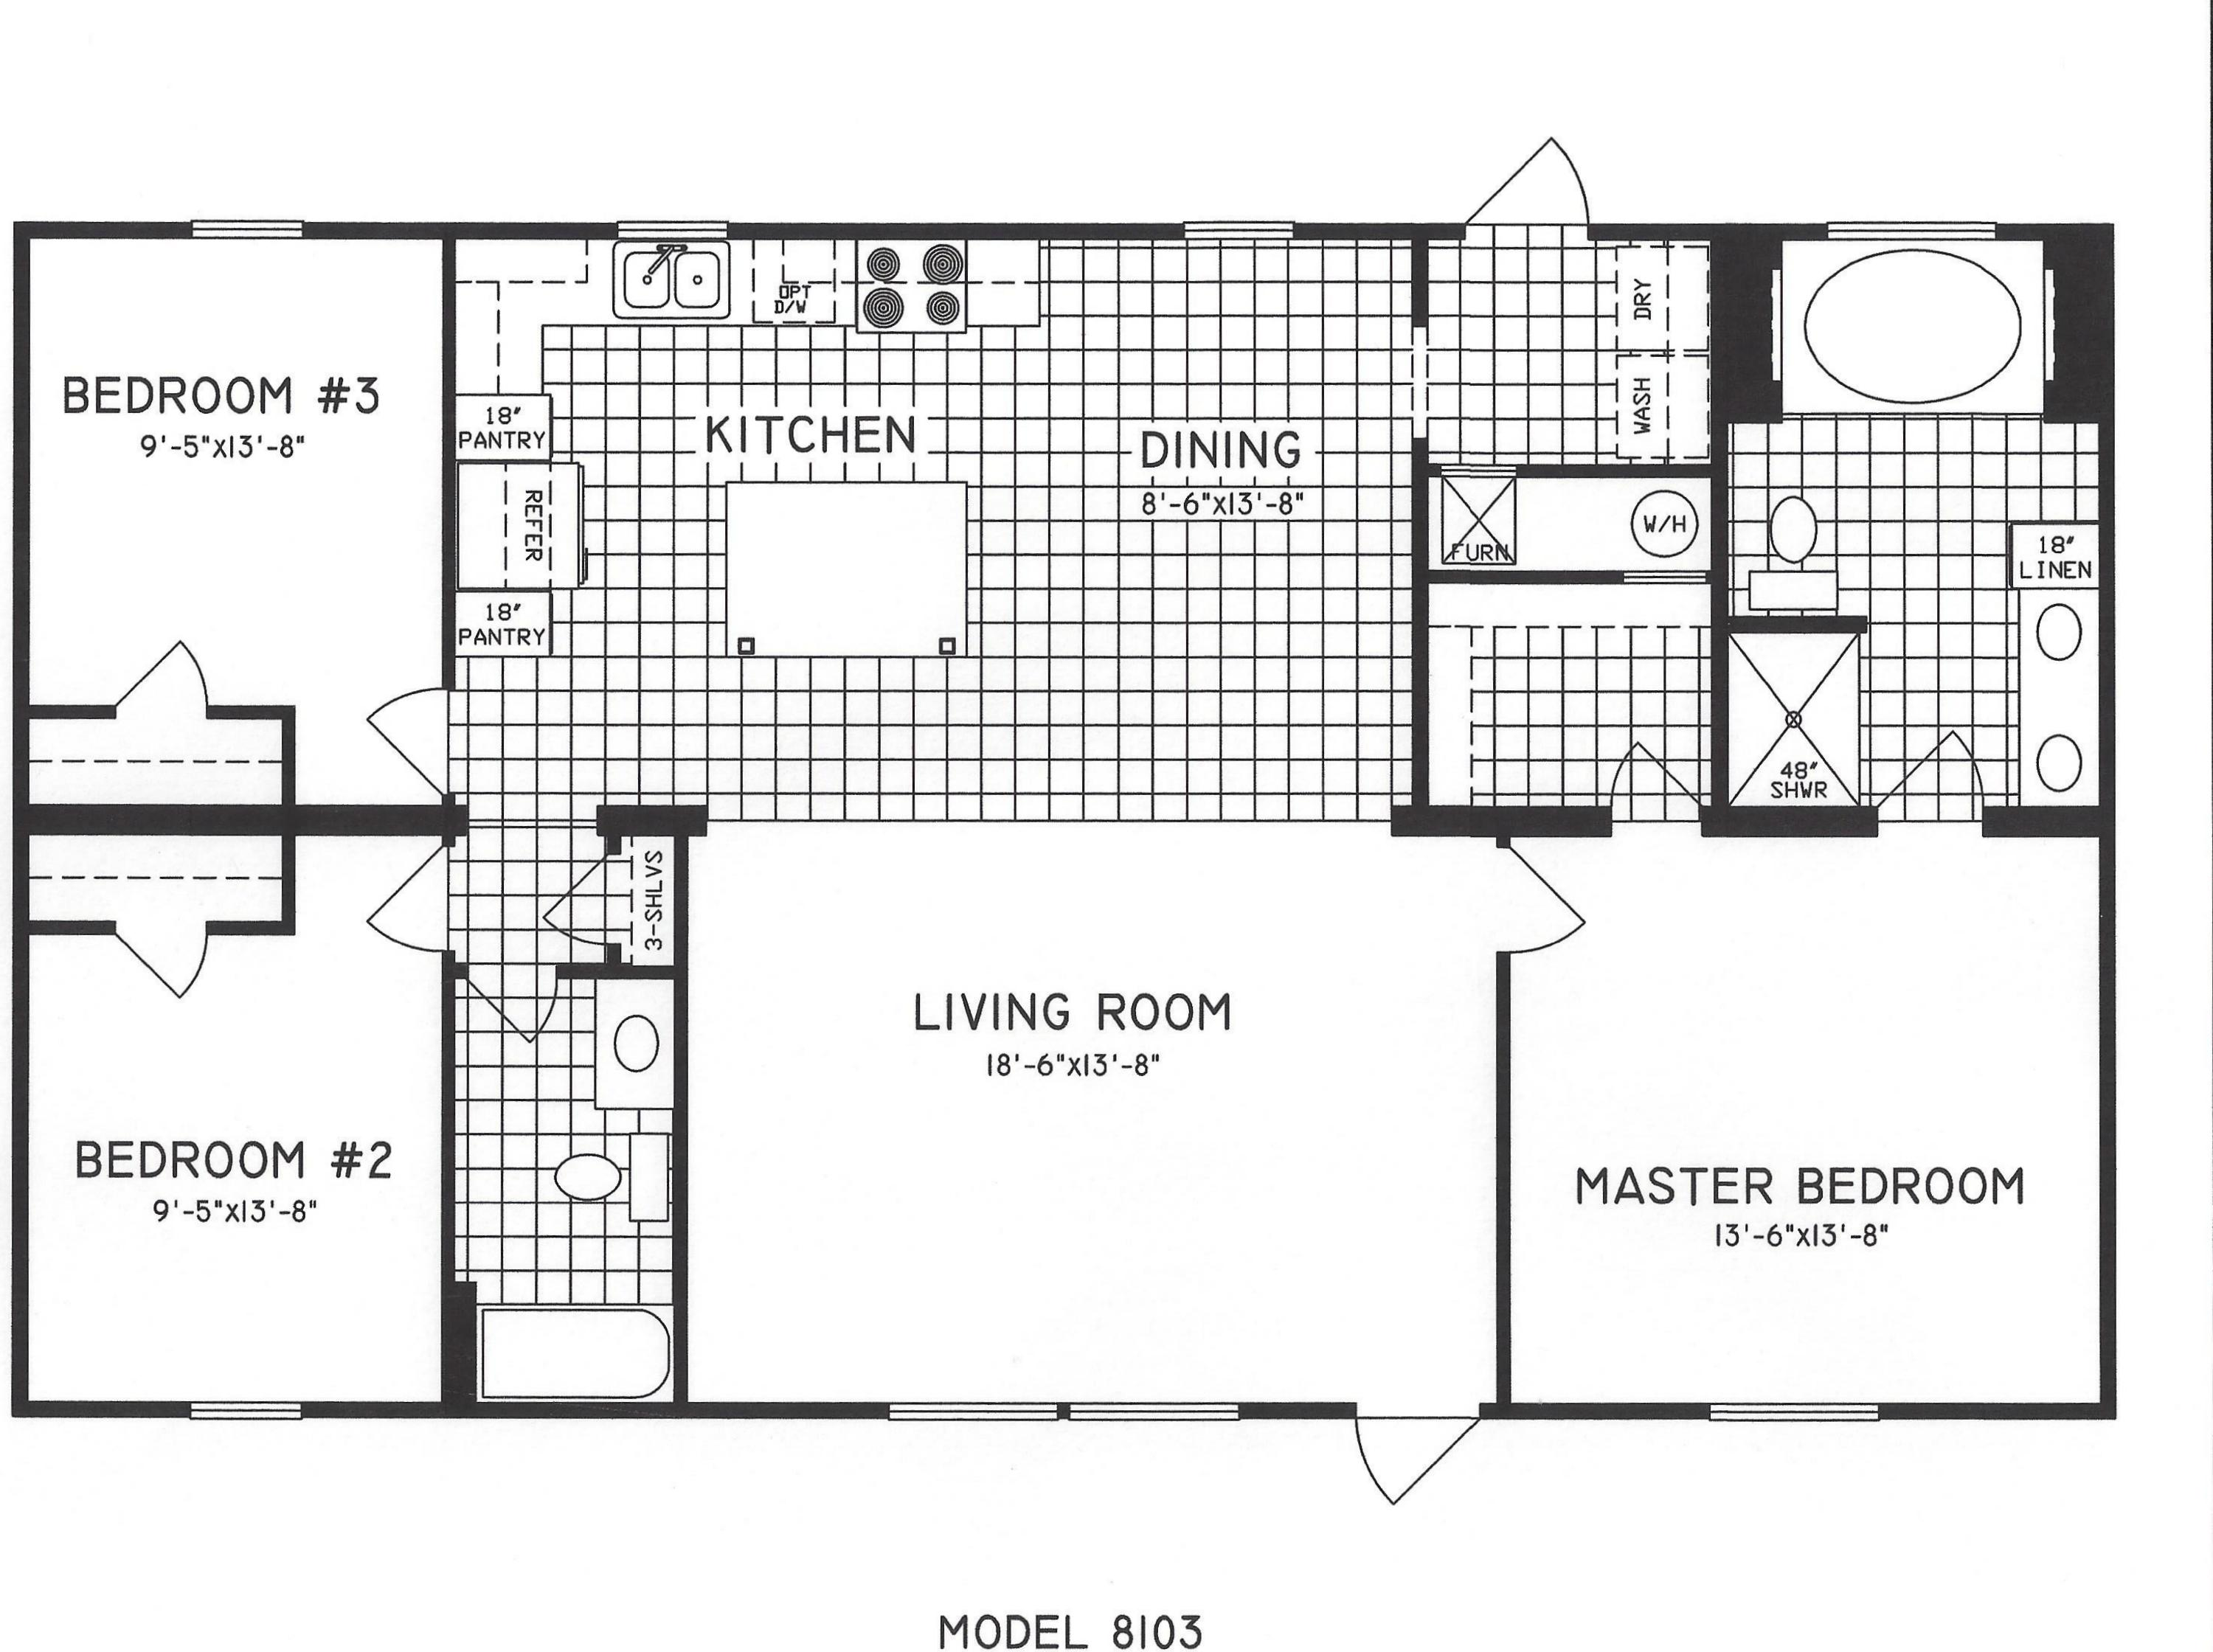 3 bedroom floor plan c 8103 hawks homes manufactured for 3 bedroom 2 bathroom house plans